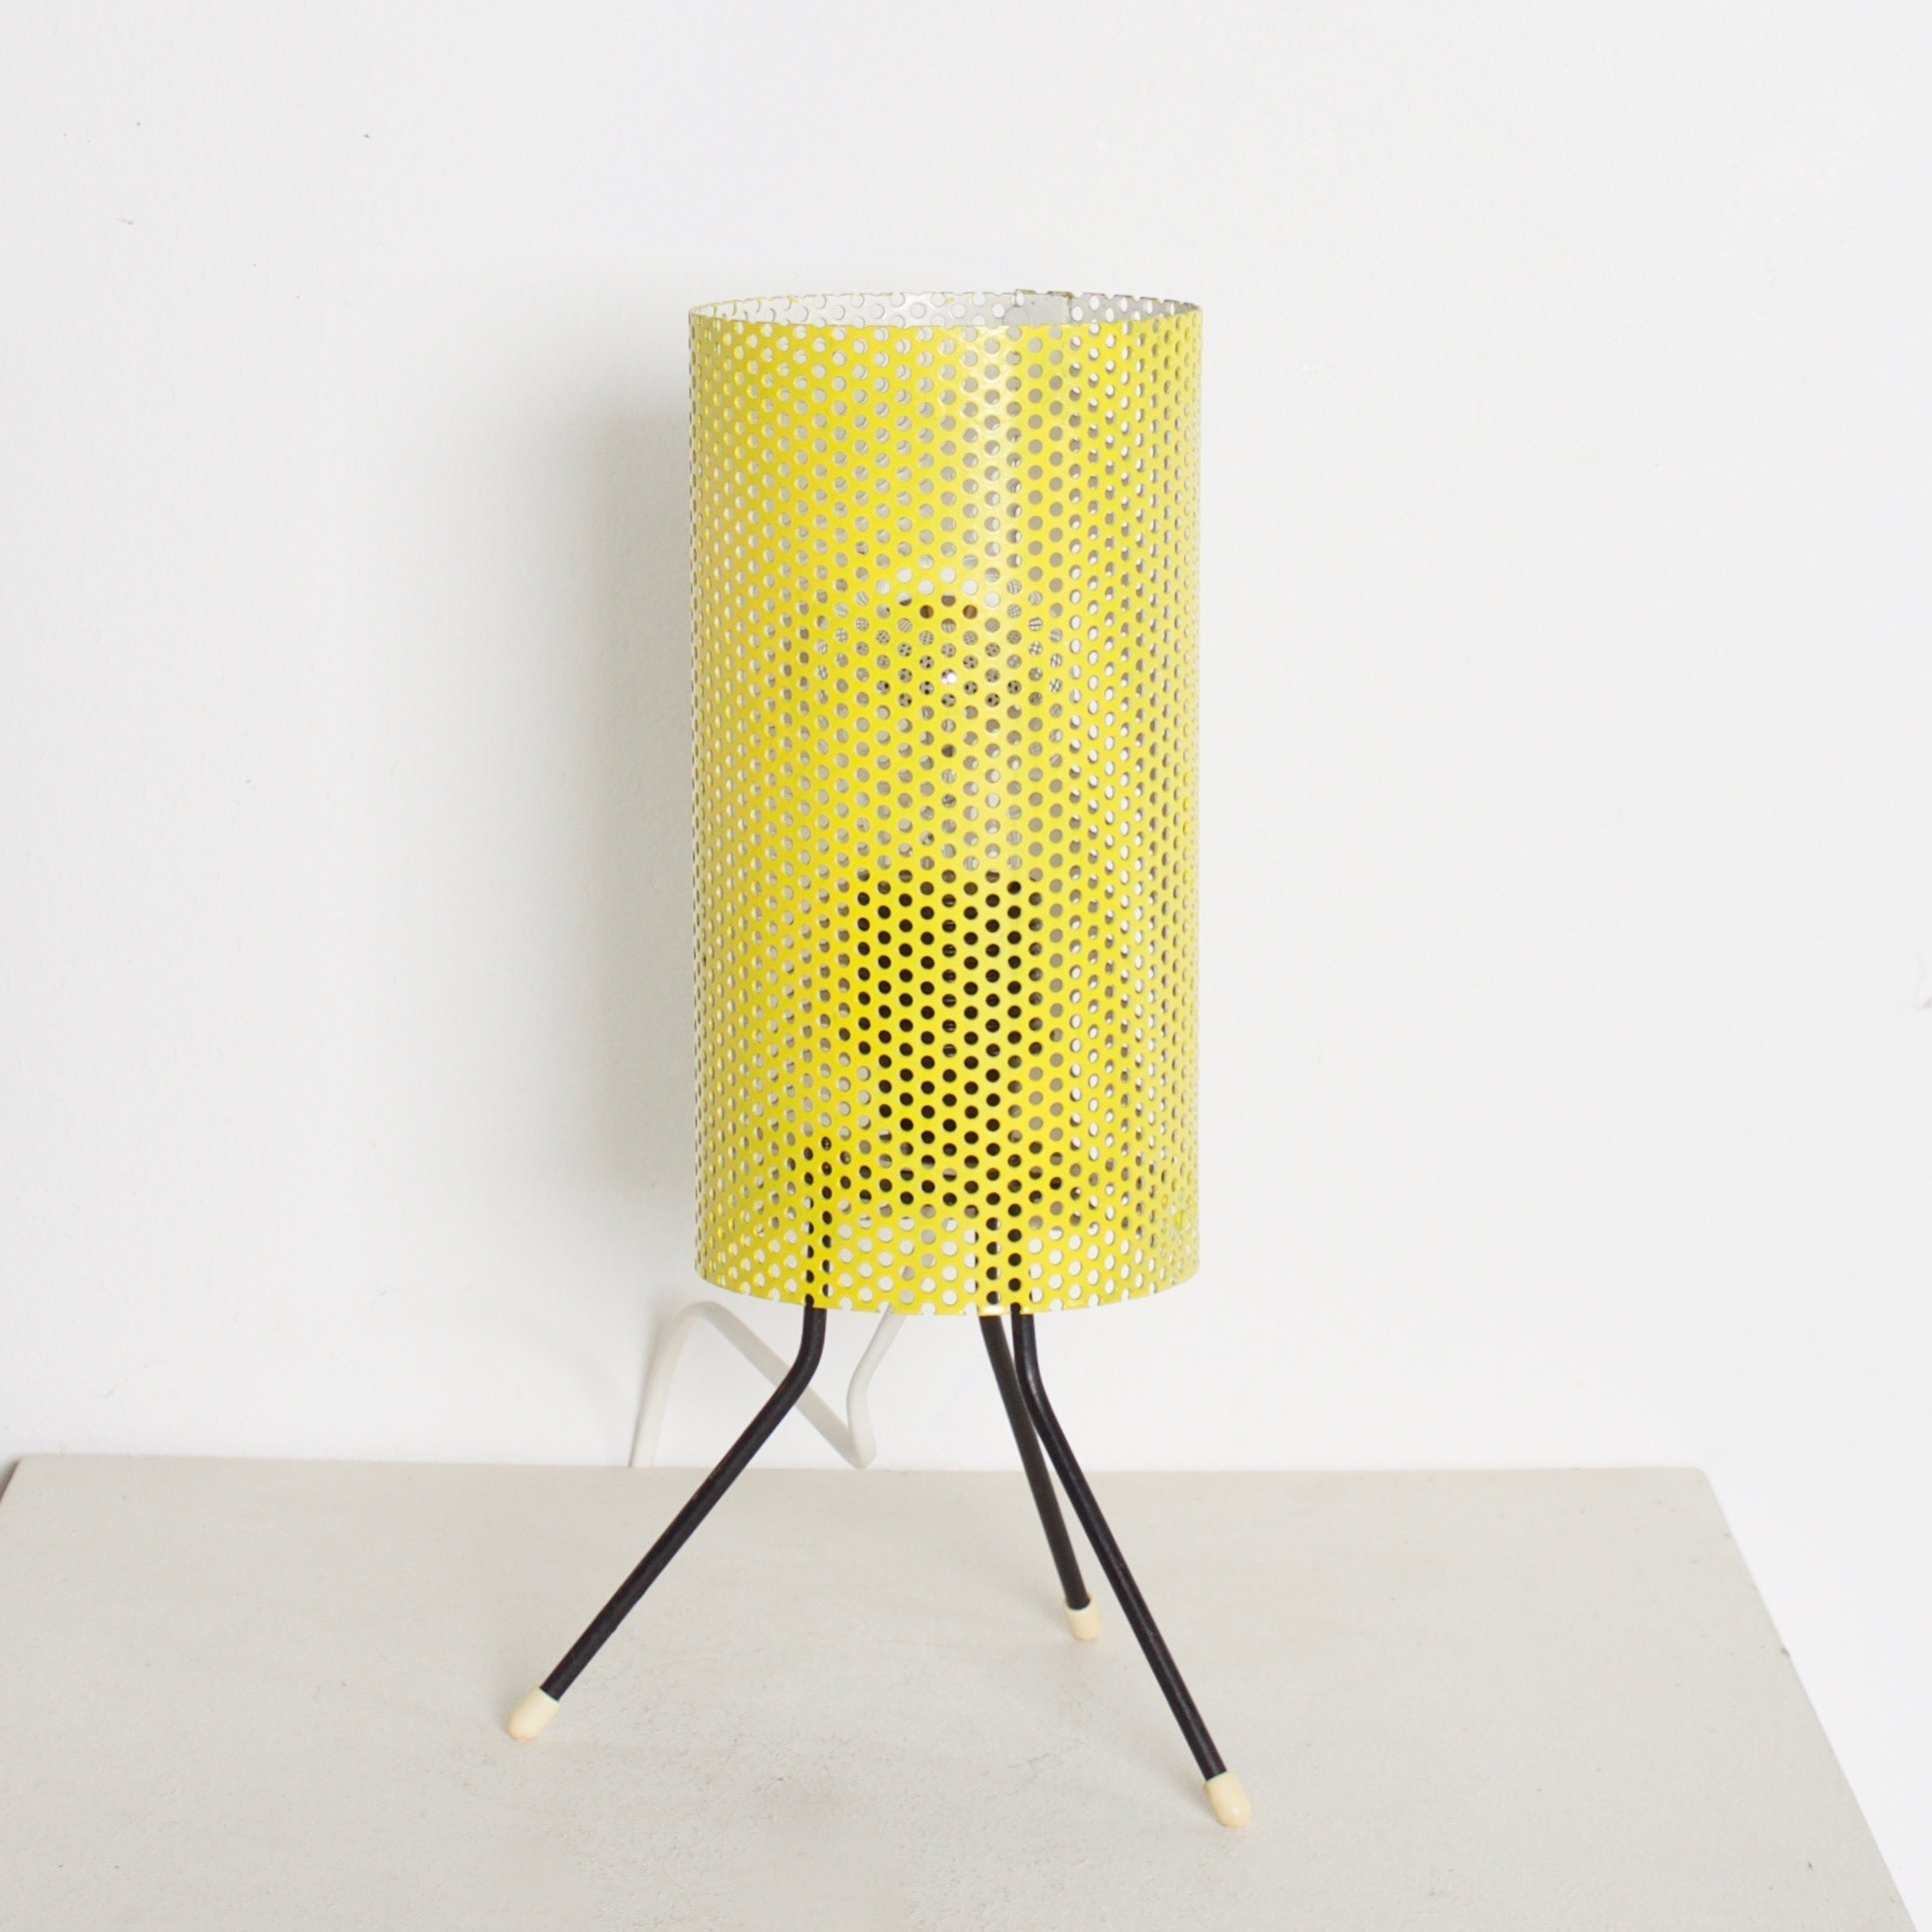 Metal Table Lamp By Tjerk Reijenga For Pilastro 1950s